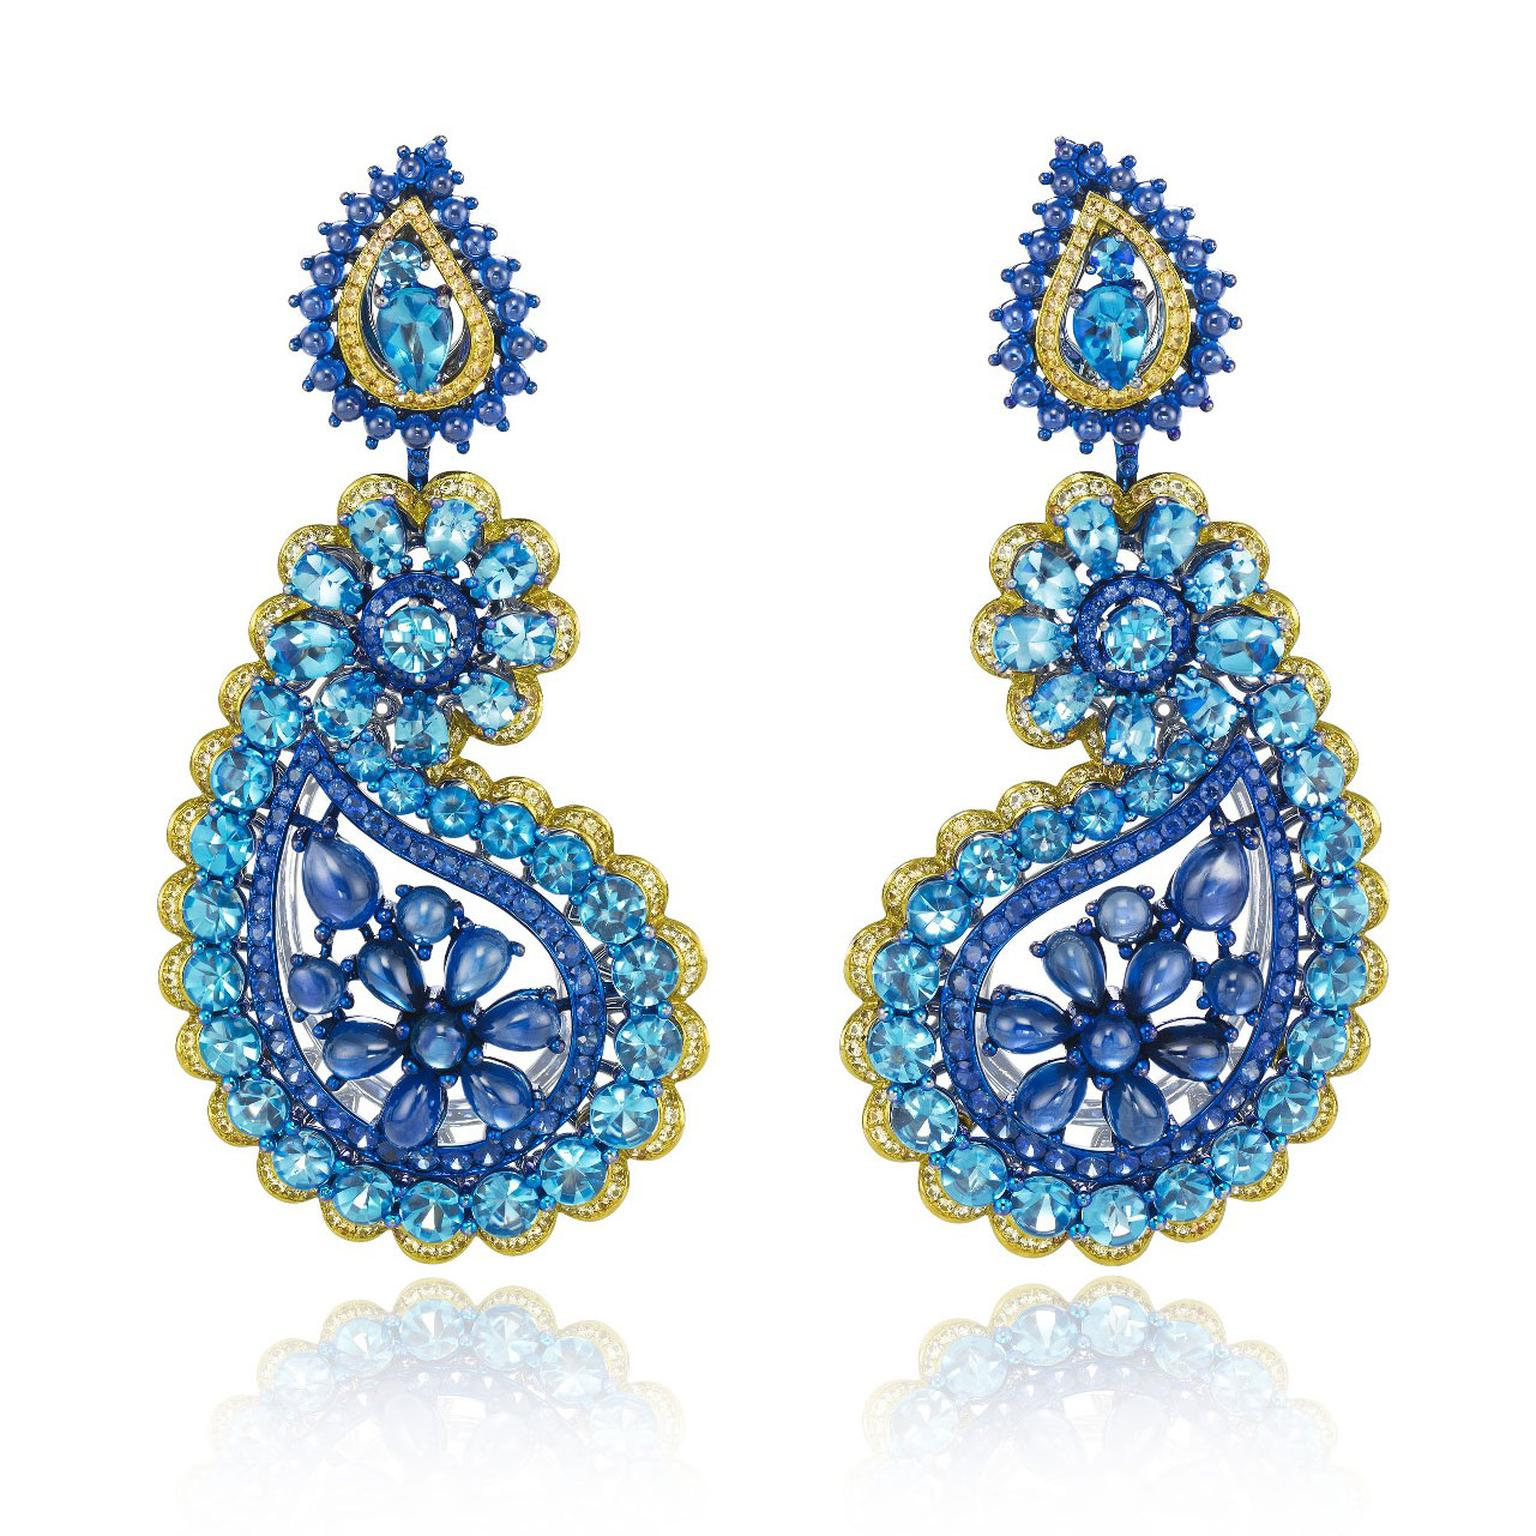 Expert review of Chopard Cannes Red Carpet jewels 2018